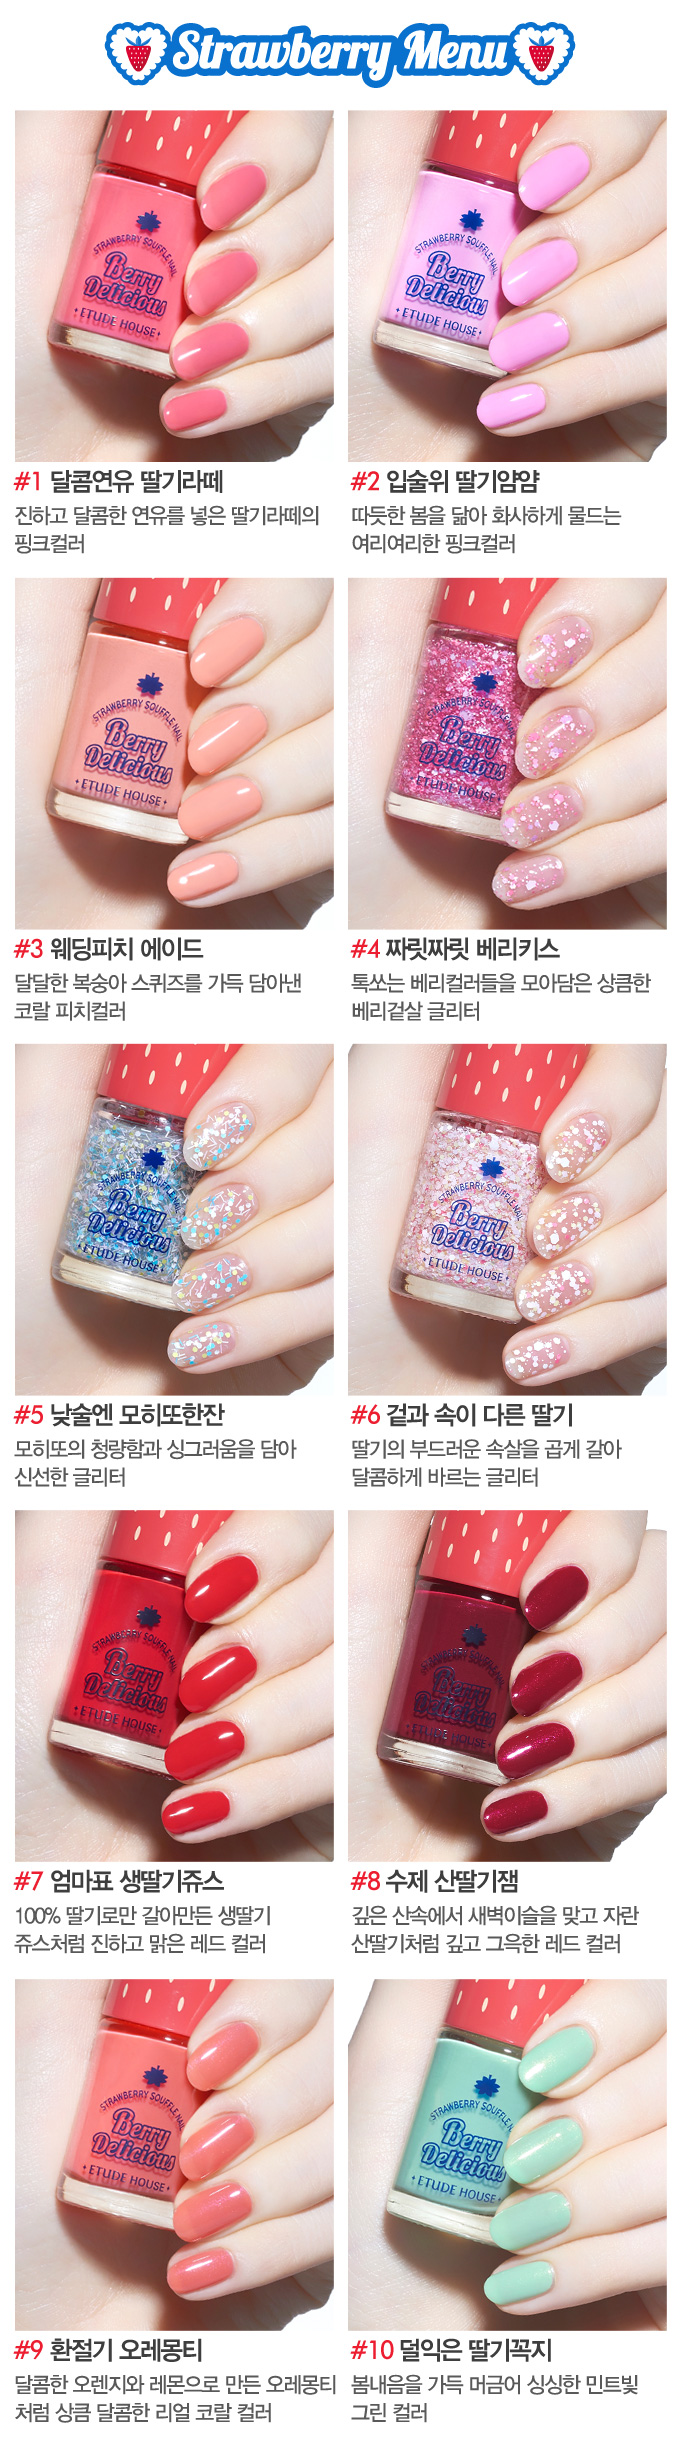 -etude-house-berry-deliciou-strawberry-souffle-nail-8ml-dscr.jpg